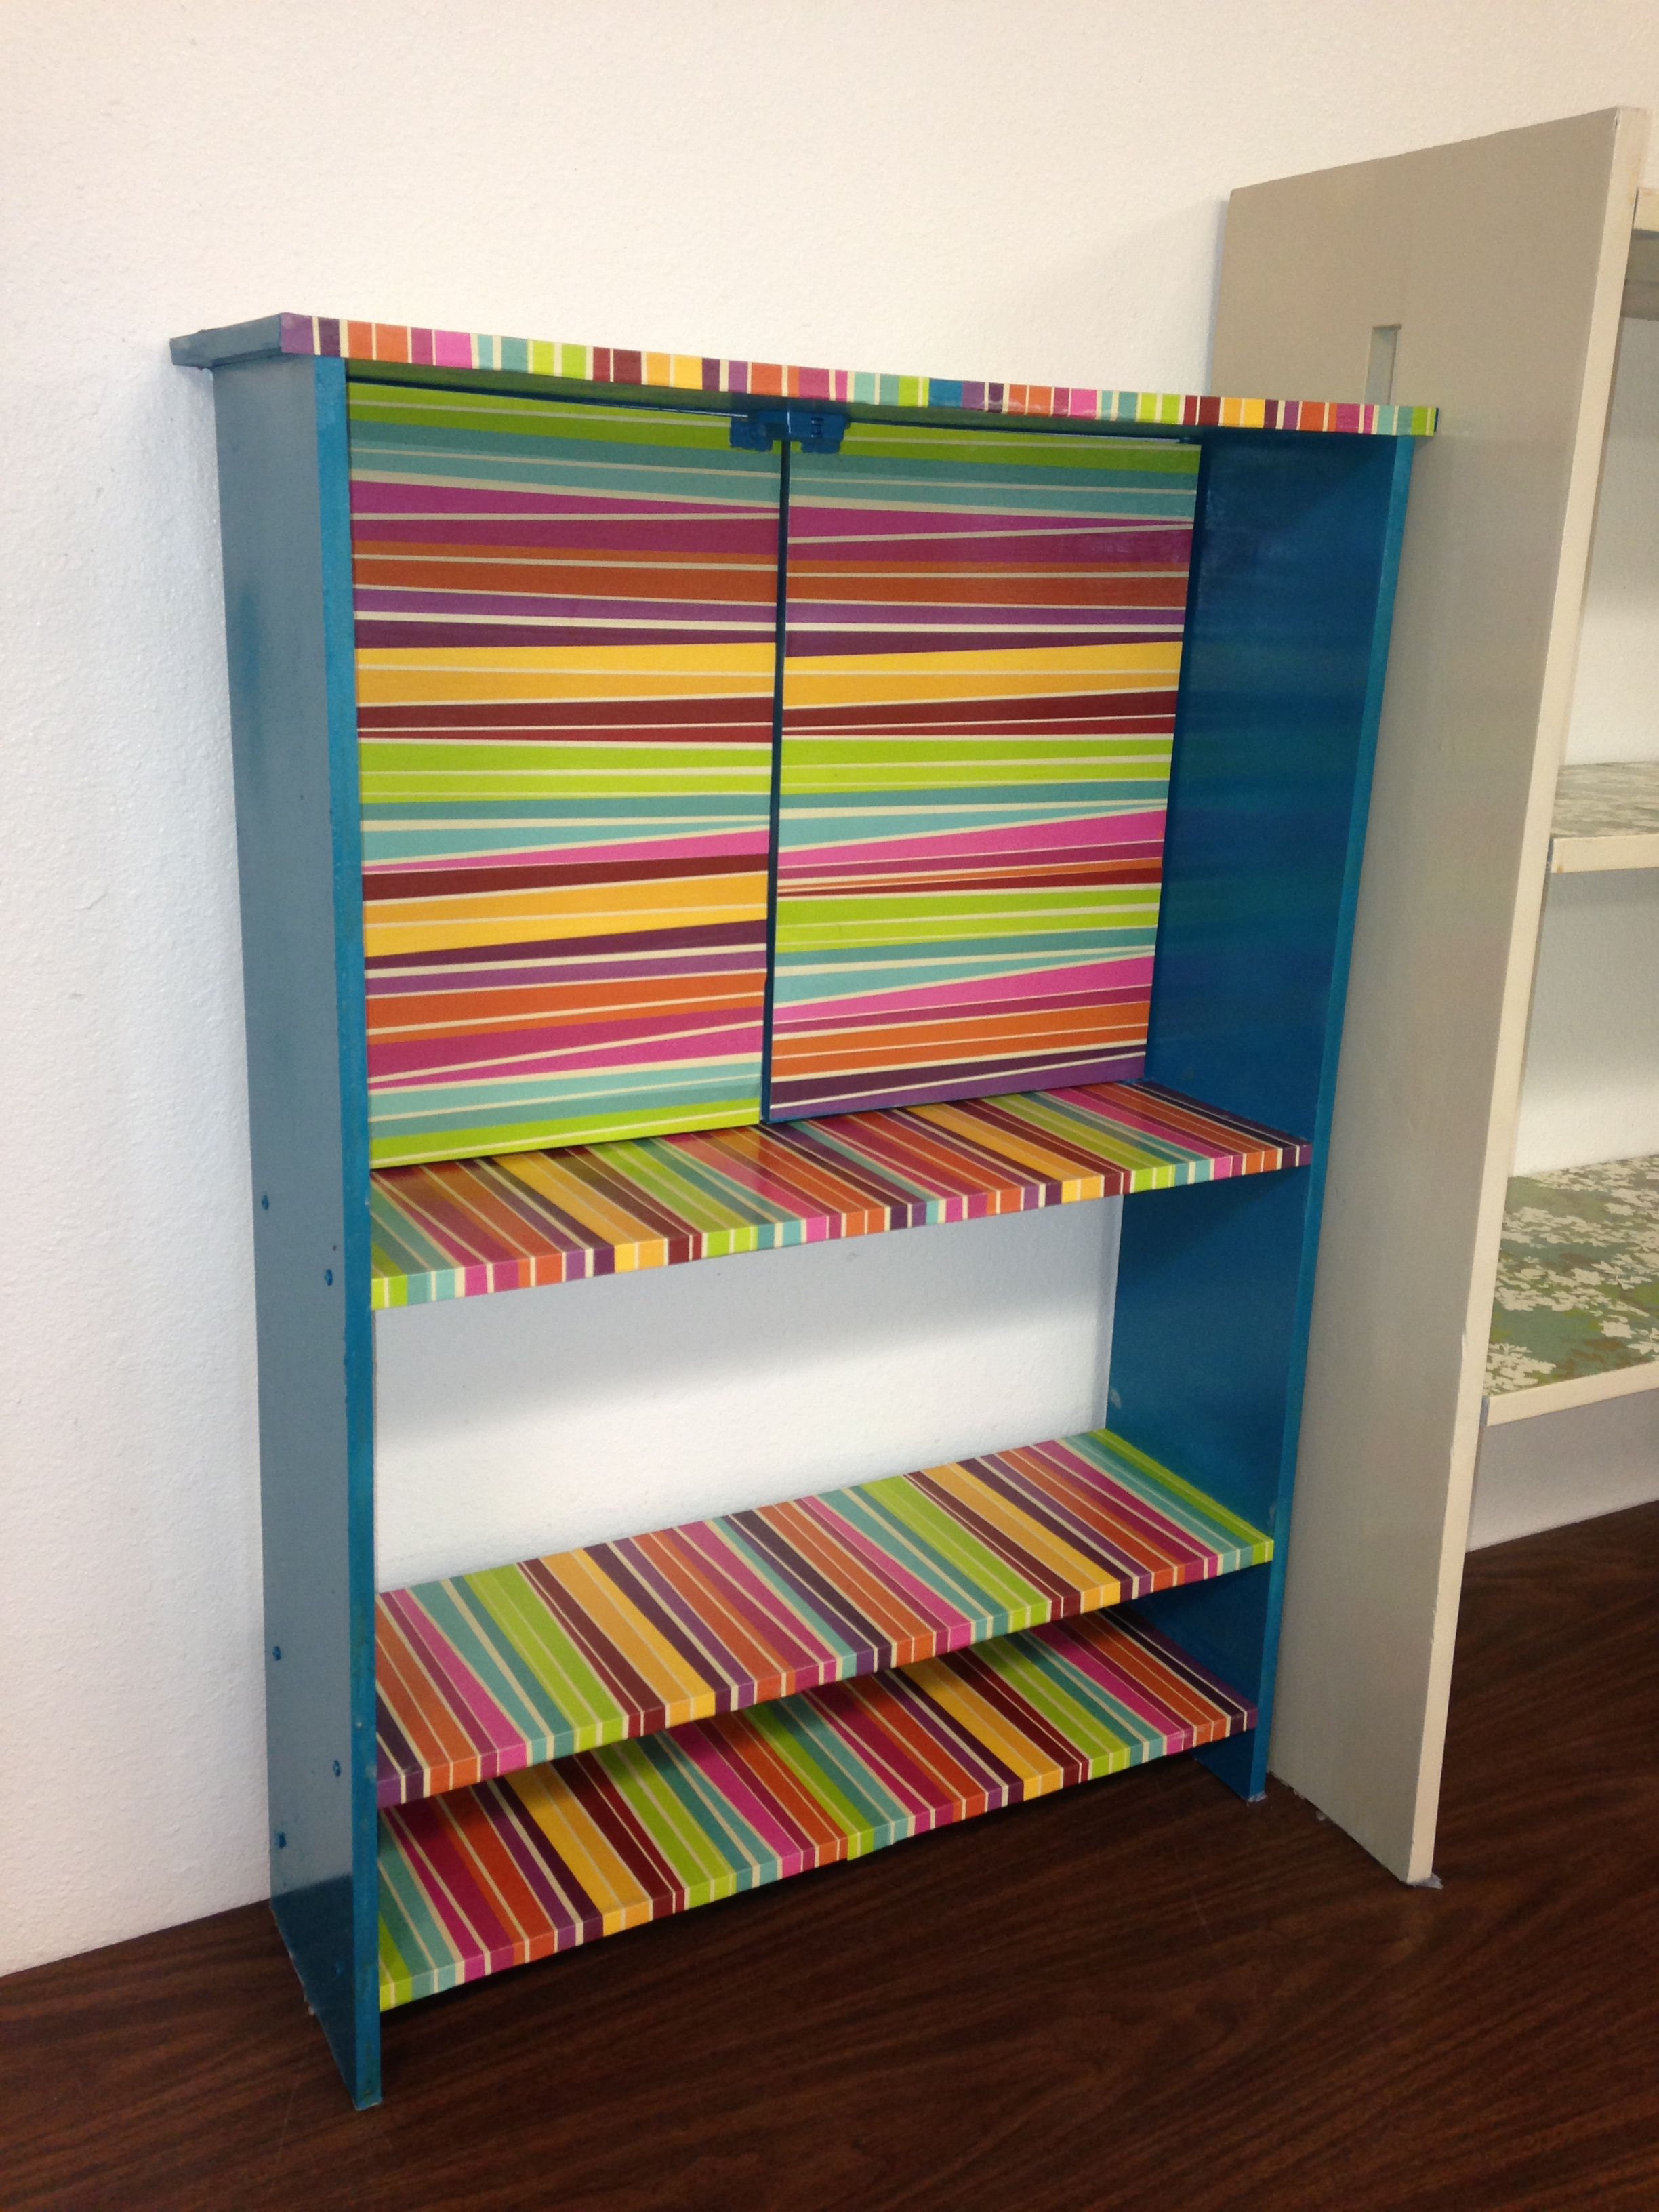 Decoupaged Classroom Bookshelf I Just Used Spray Paint And Scrapbook Paper Found A Cheap Bookcase At Thrift Store